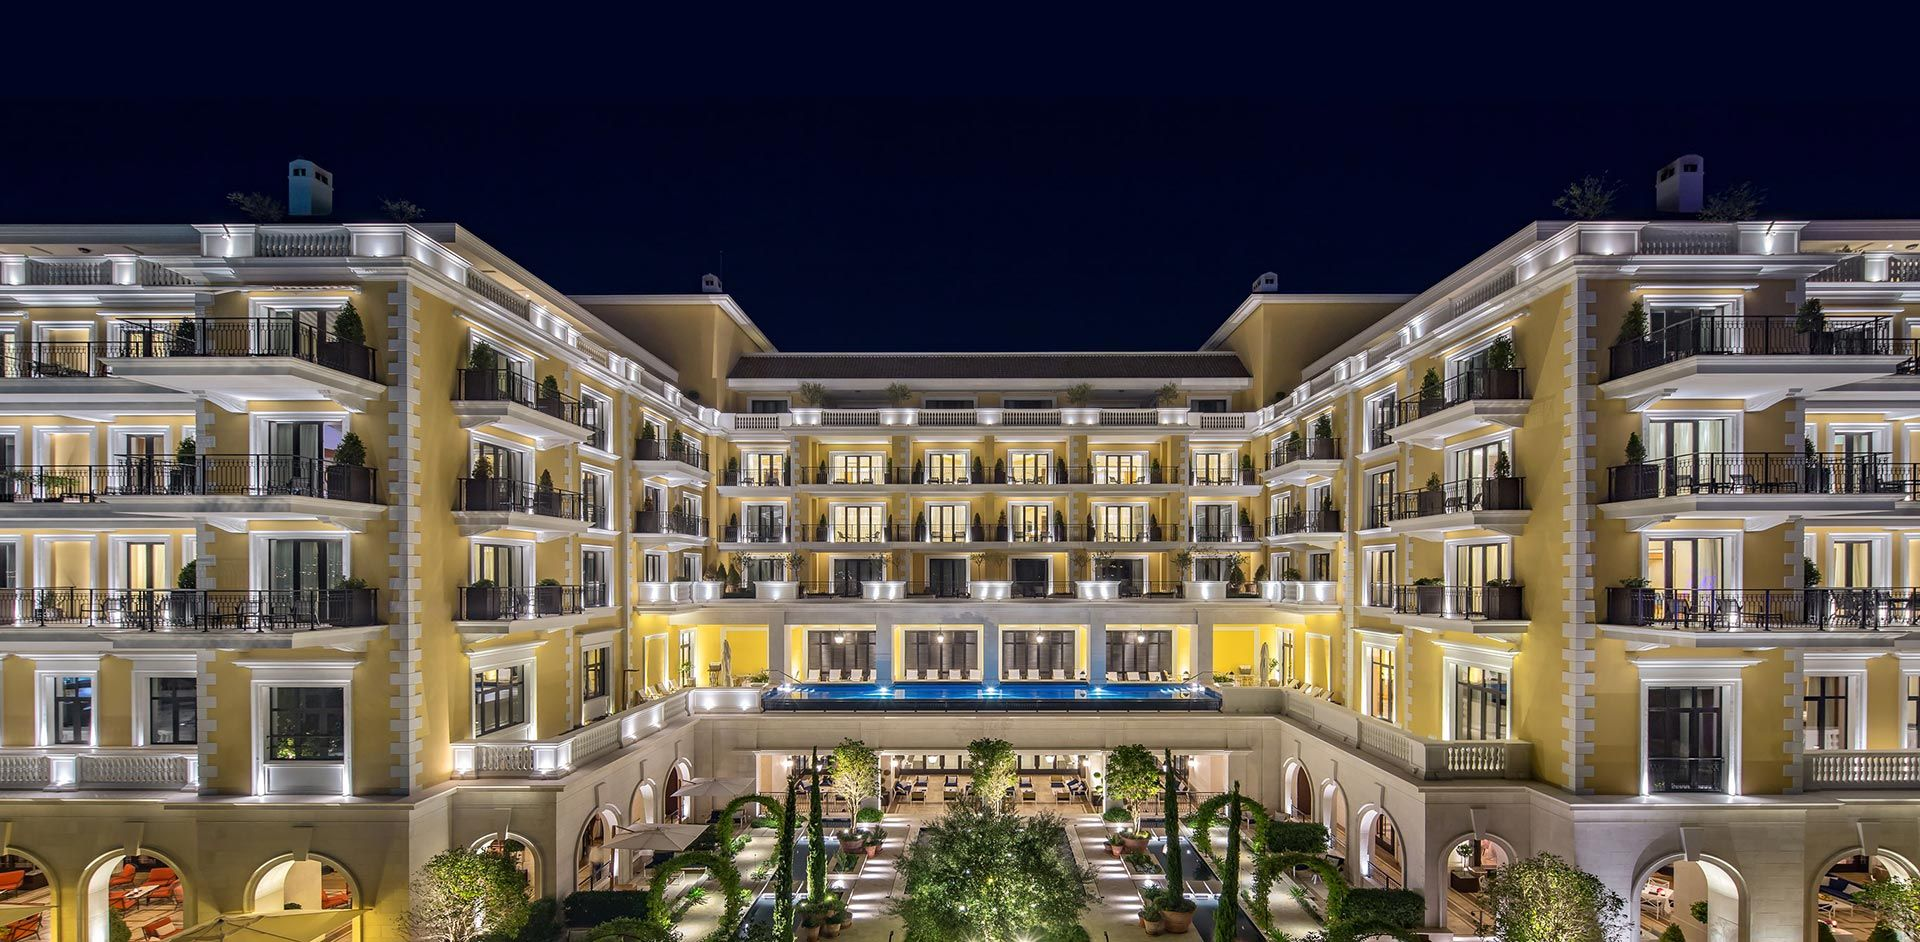 Hotel Regent Porto Montenegro Won Best Conference Resort Hotel Award 4